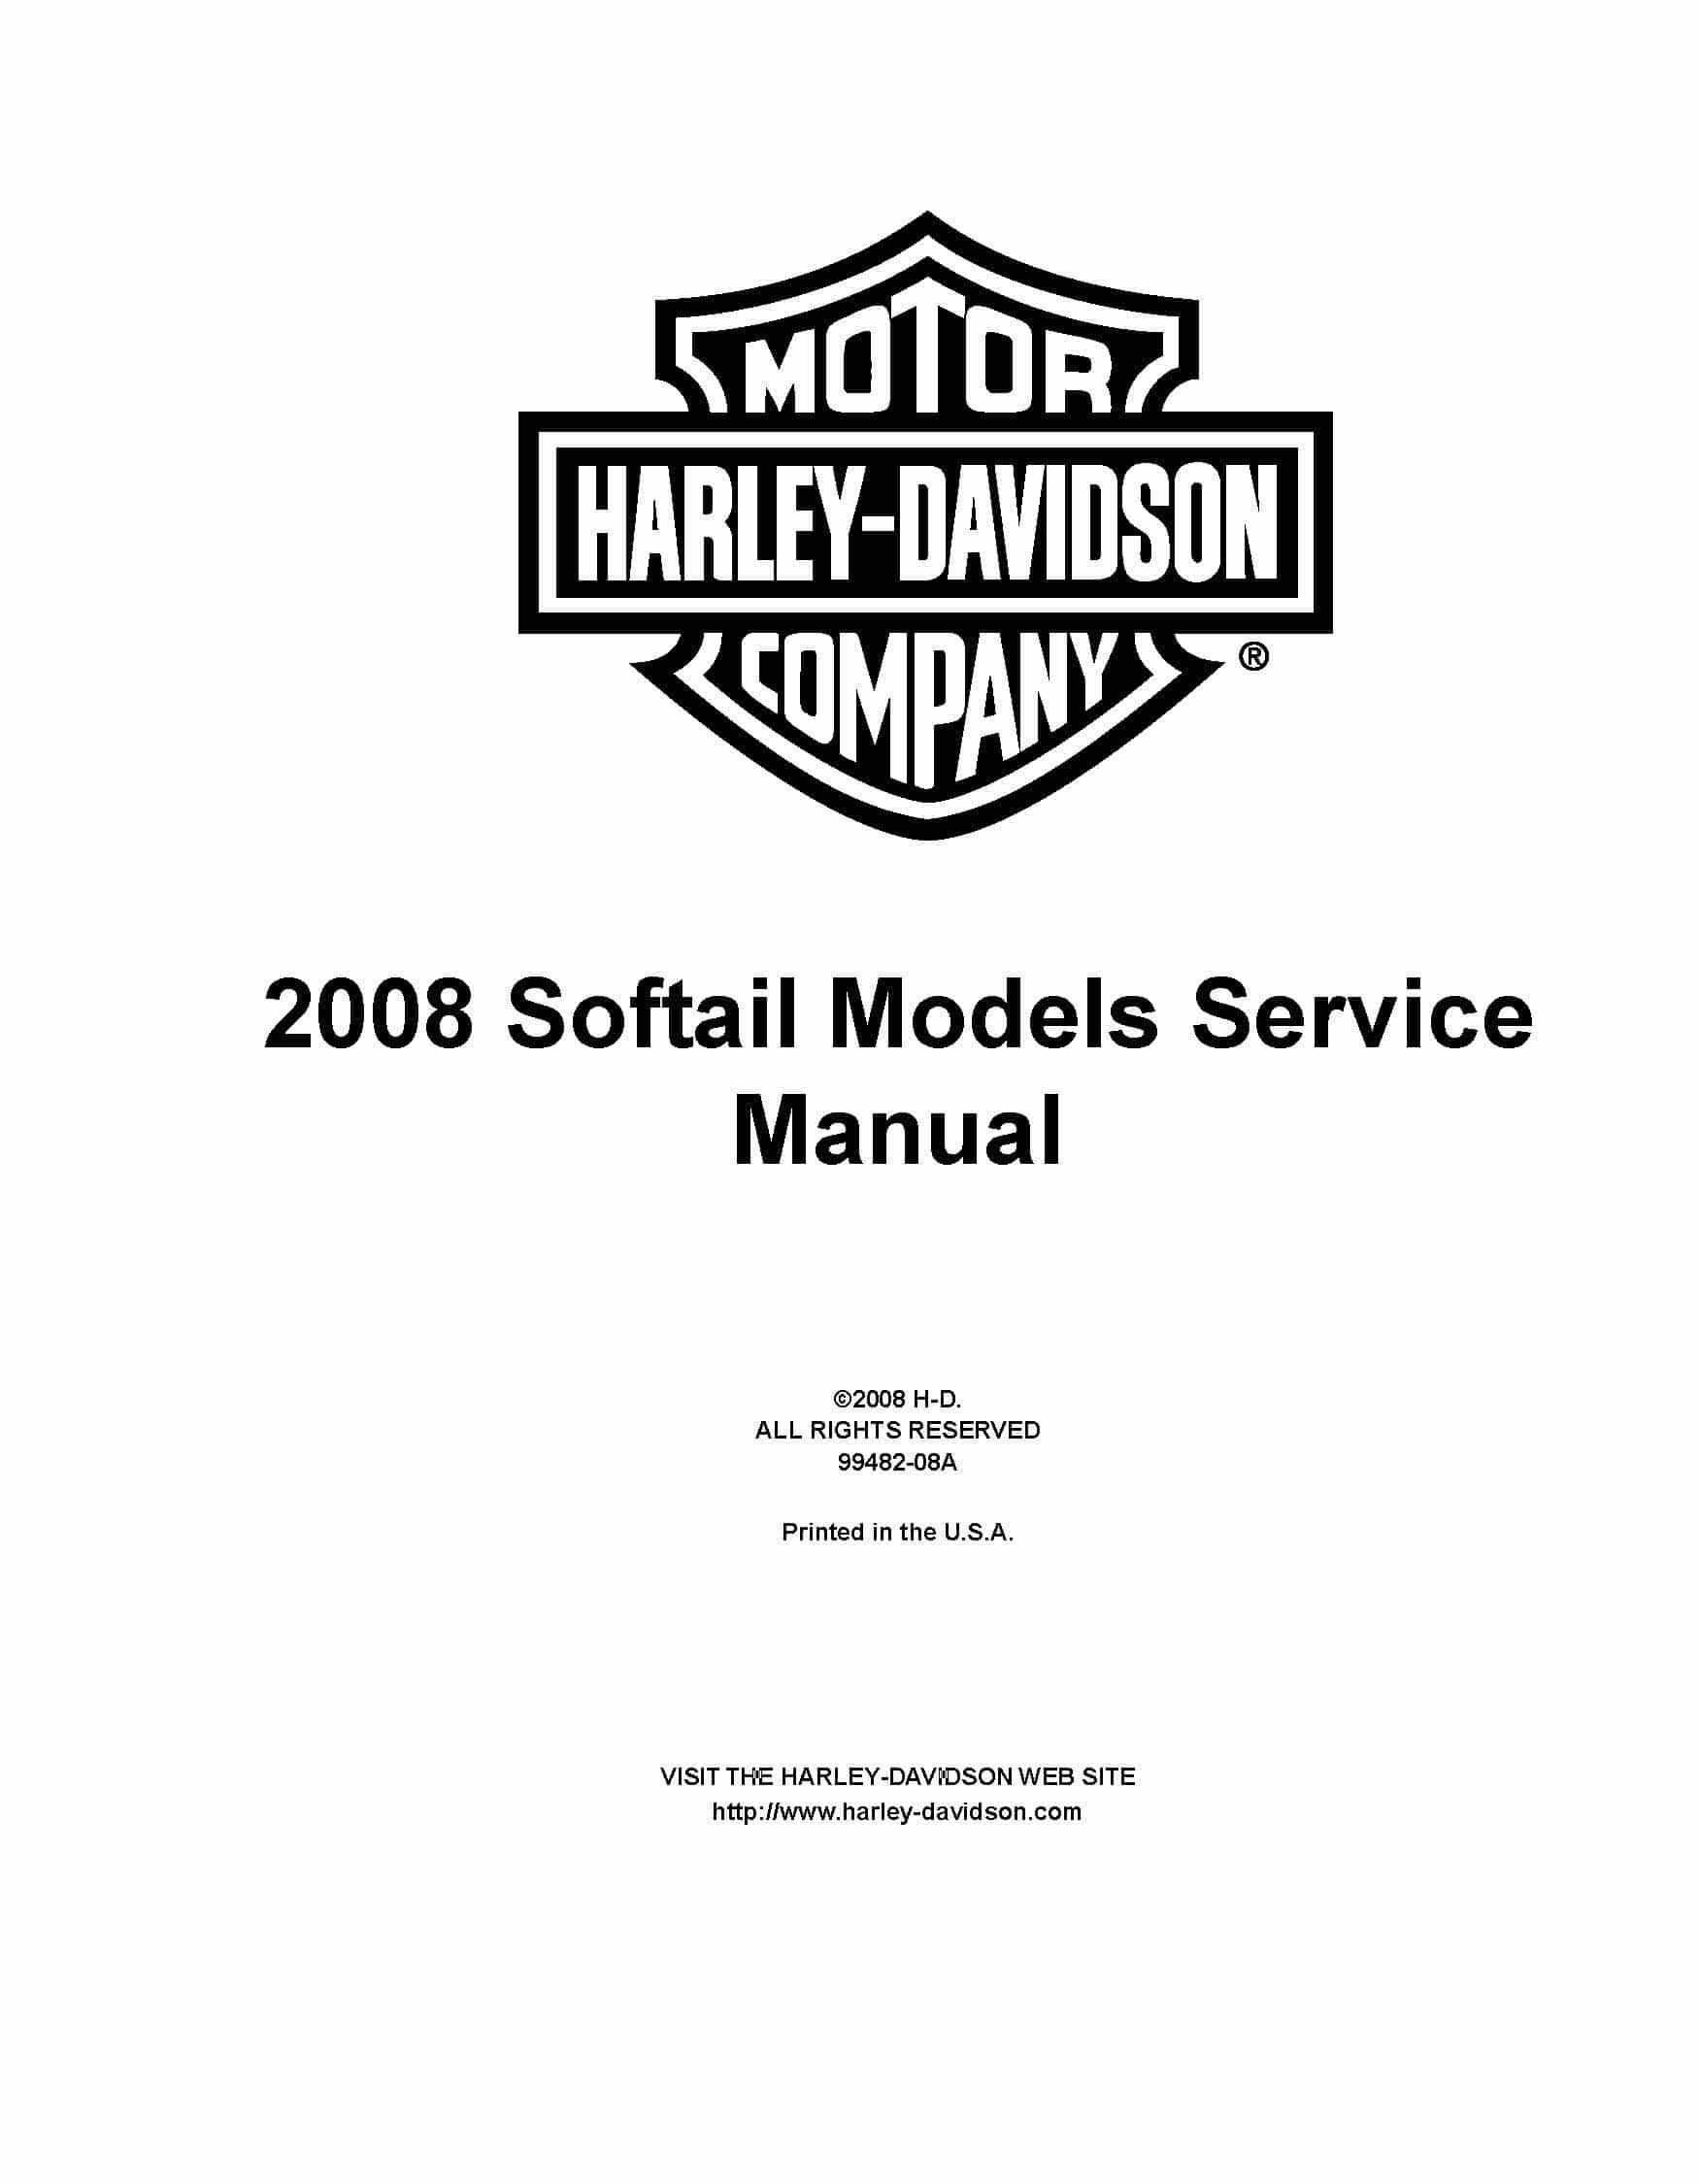 Harley Davidson Softail FXSBSE 2013 Supplement Service